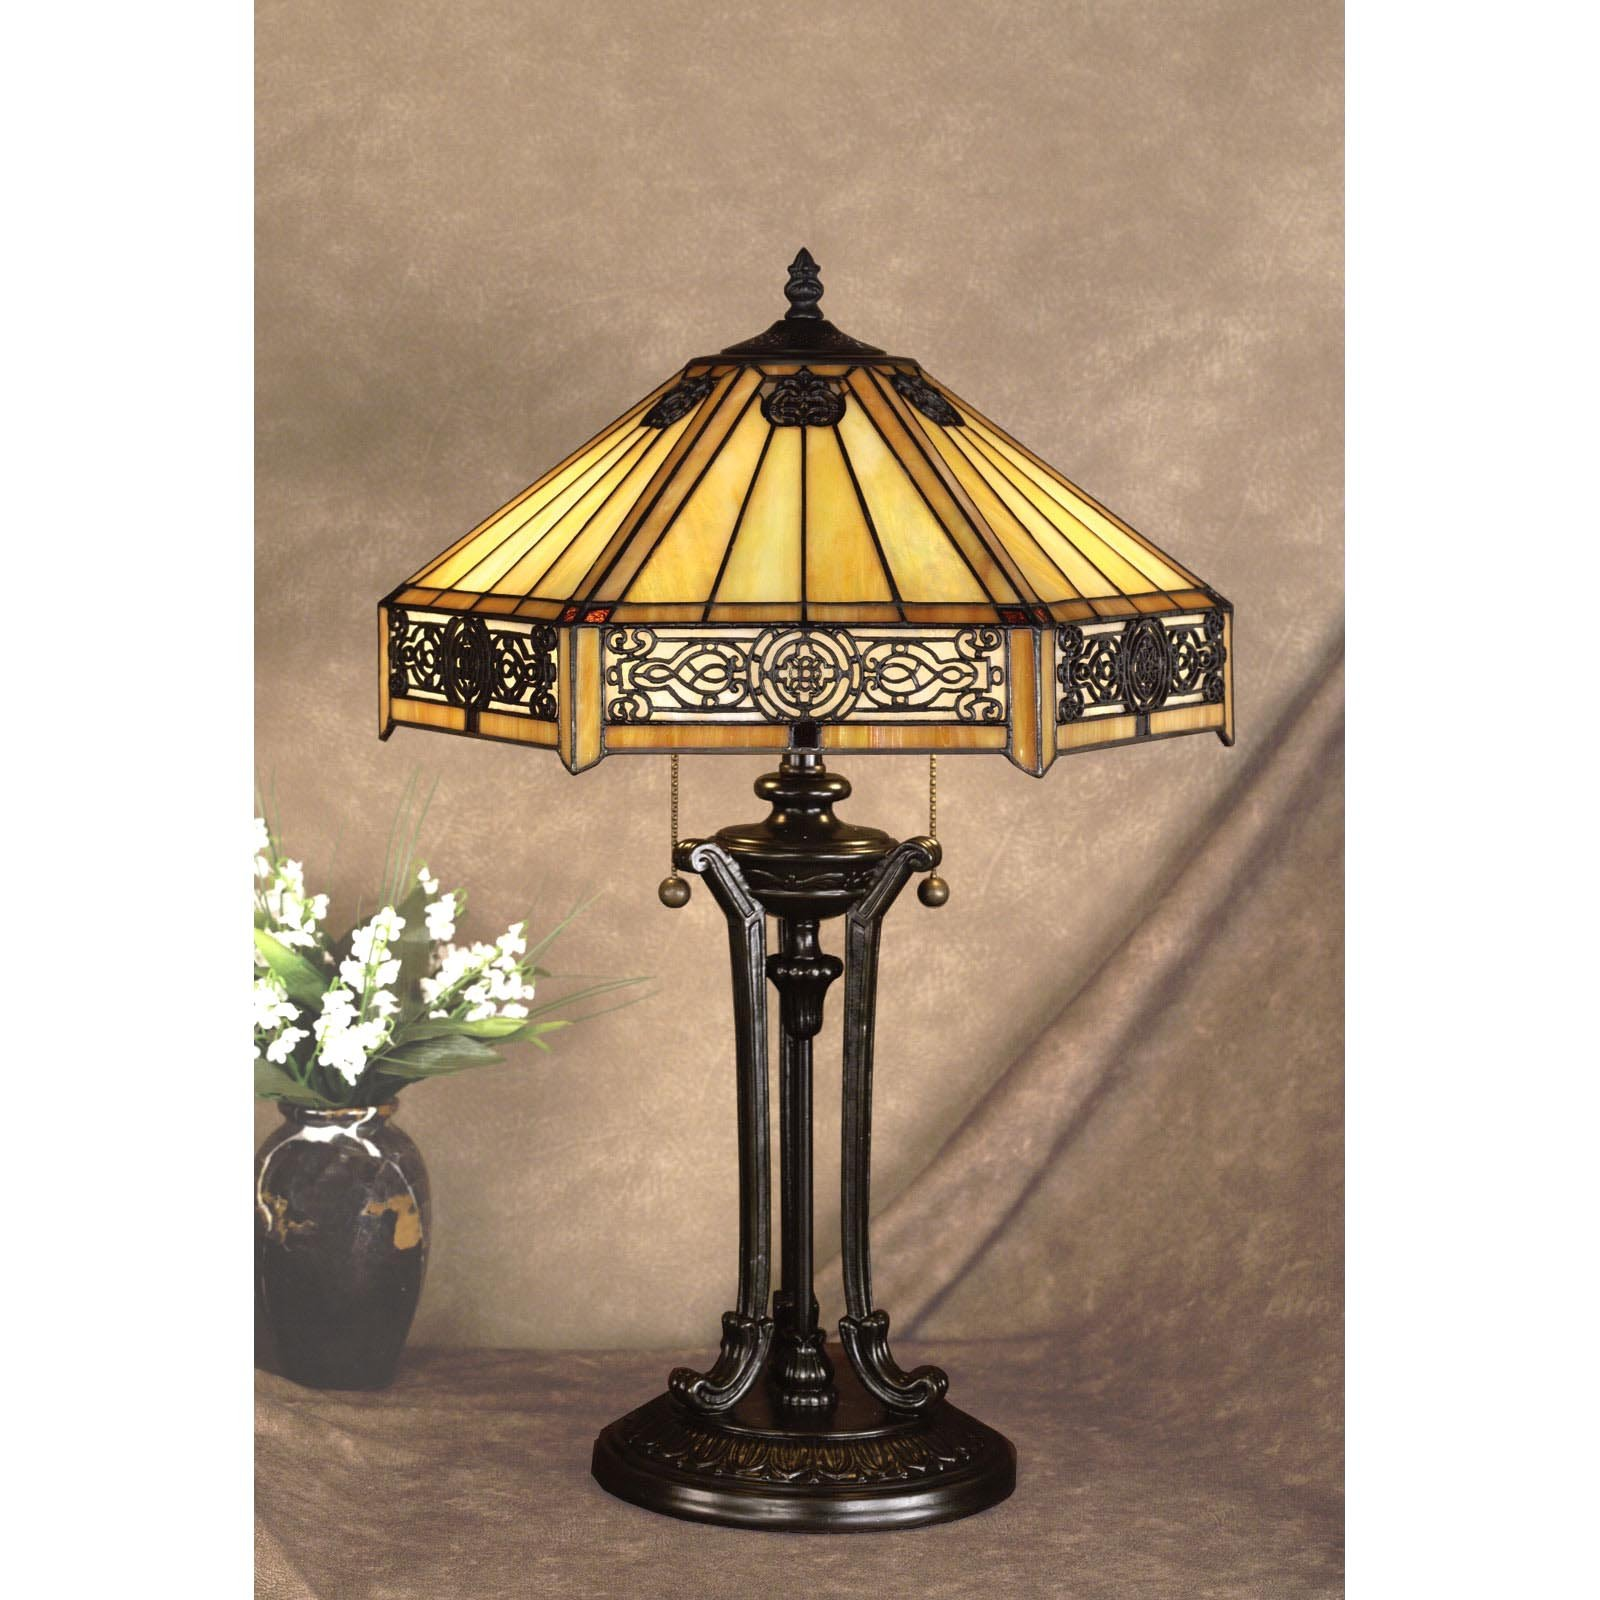 art deco lampen de mooiste art deco lampen online. Black Bedroom Furniture Sets. Home Design Ideas